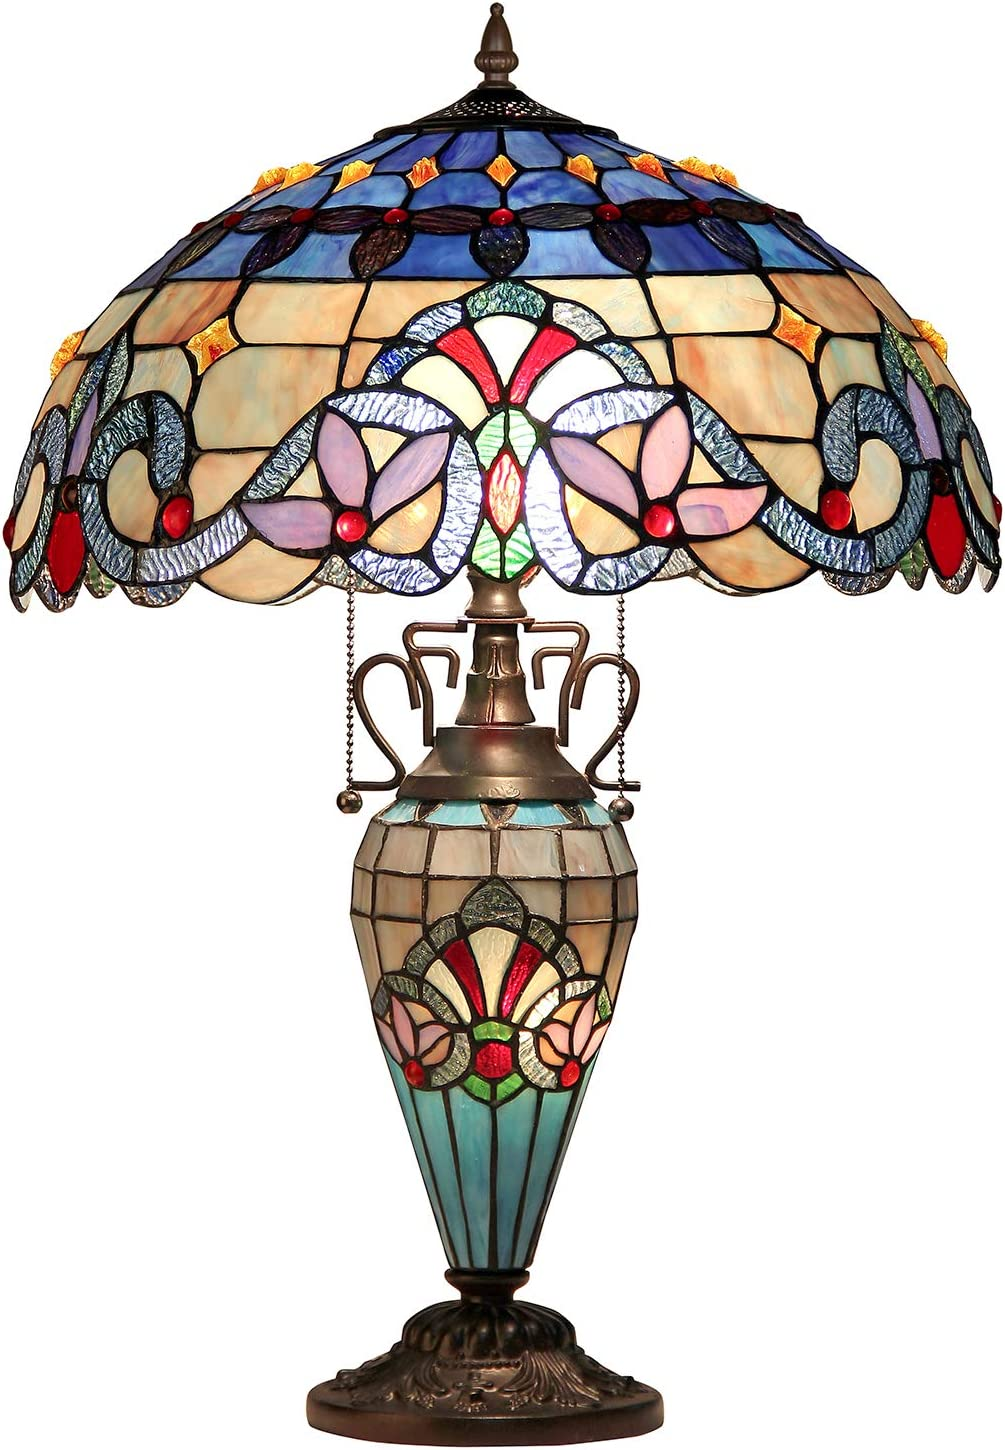 "Tiffany Table Light, Capulina HandCrafted 16.1"" Tiffany Desk Lamp Shades, Stained Glass Lamps Accentuate any Home or Business, Office, Desk, Entry, Living Room with a Classic Feel - Gothic Glass Style"